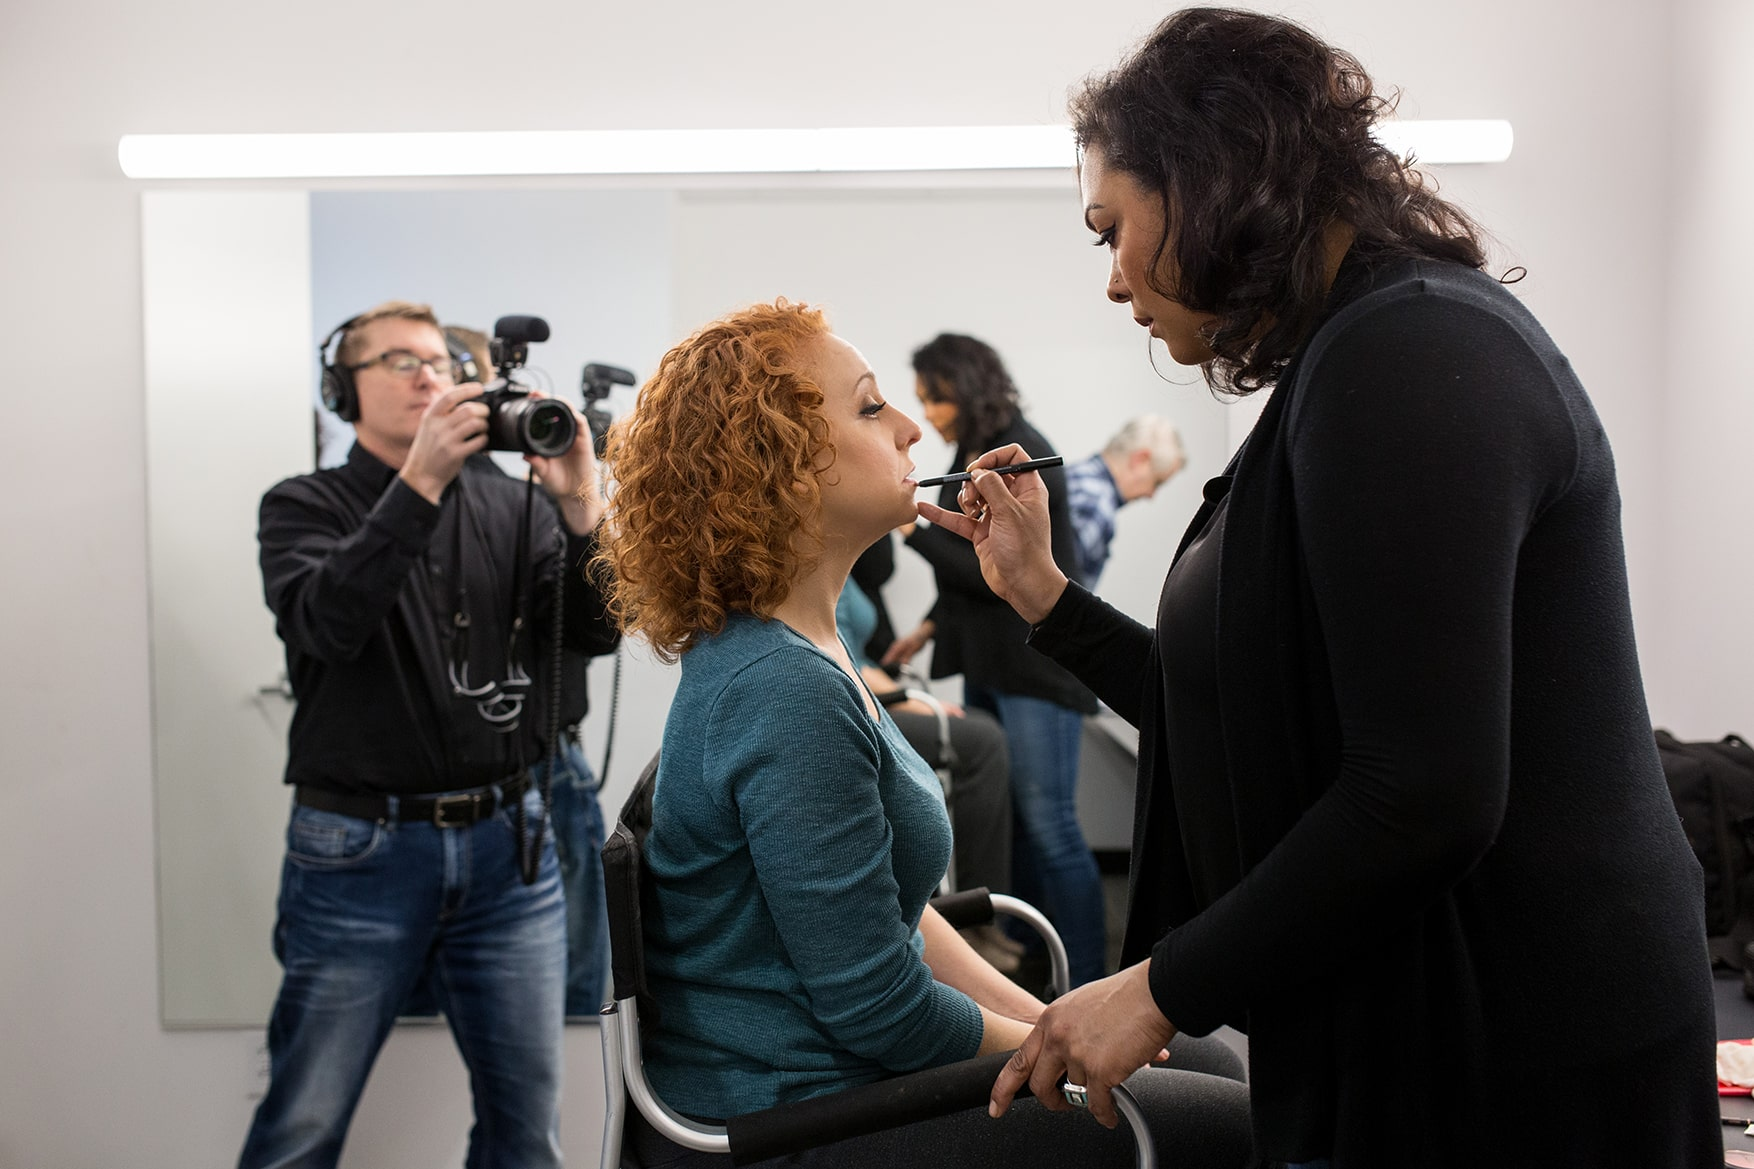 A red haired woman has her makeup applied for a photoshoot